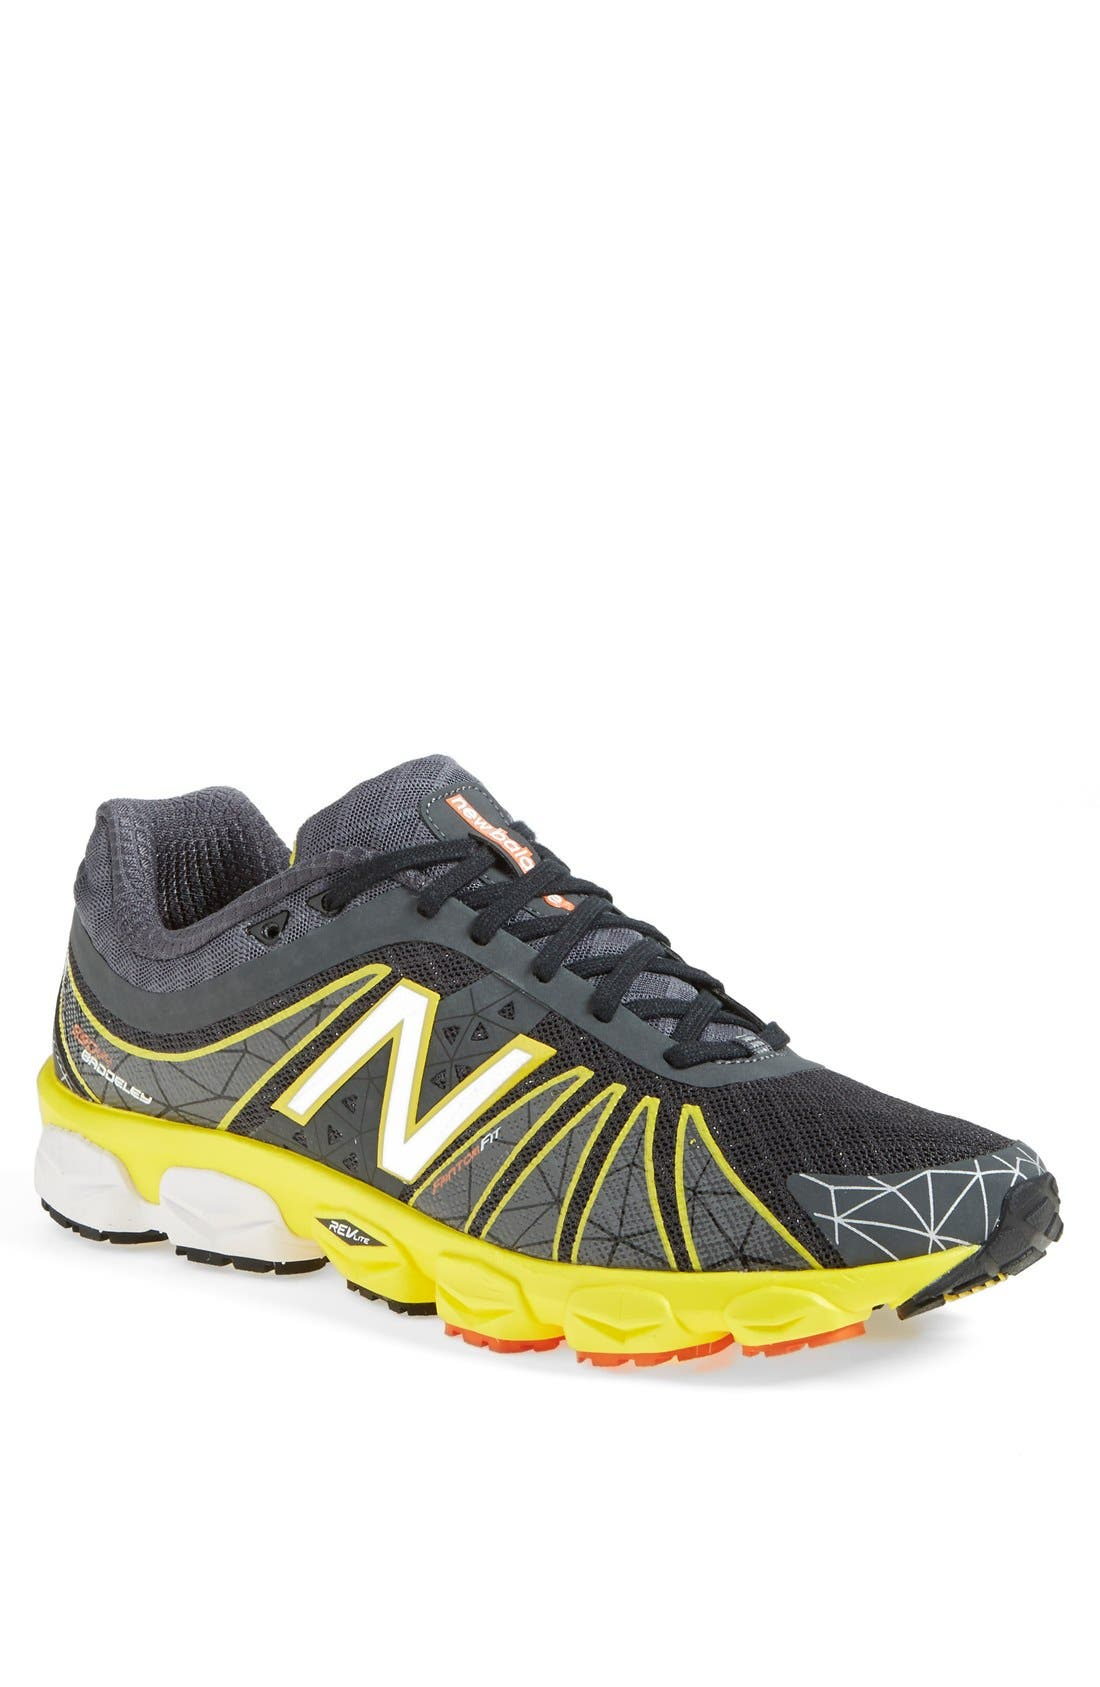 Alternate Image 1 Selected - New Balance '890v4' Running Shoe (Men)